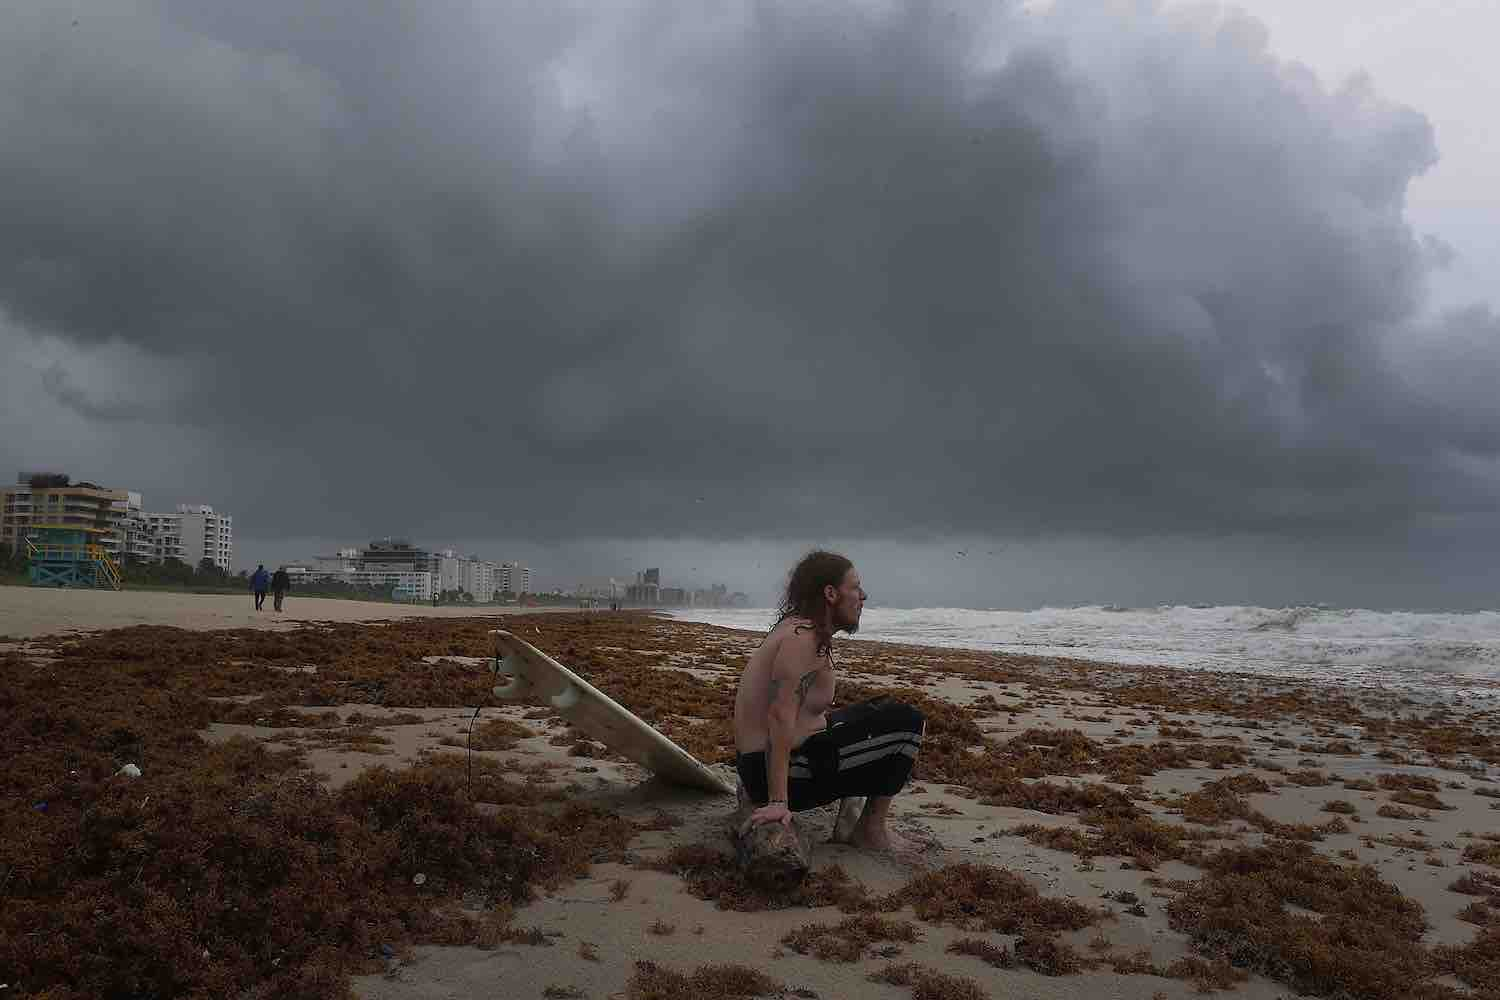 "<div class=""meta image-caption""><div class=""origin-logo origin-image kabc""><span>kabc</span></div><span class=""caption-text"">James Sampero waits for the correct currents to head out and surf in the churning ocean as Hurricane Irma approaches on September 9, 2017 in Miami Beach, Florida. (Joe Raedle/Getty)</span></div>"